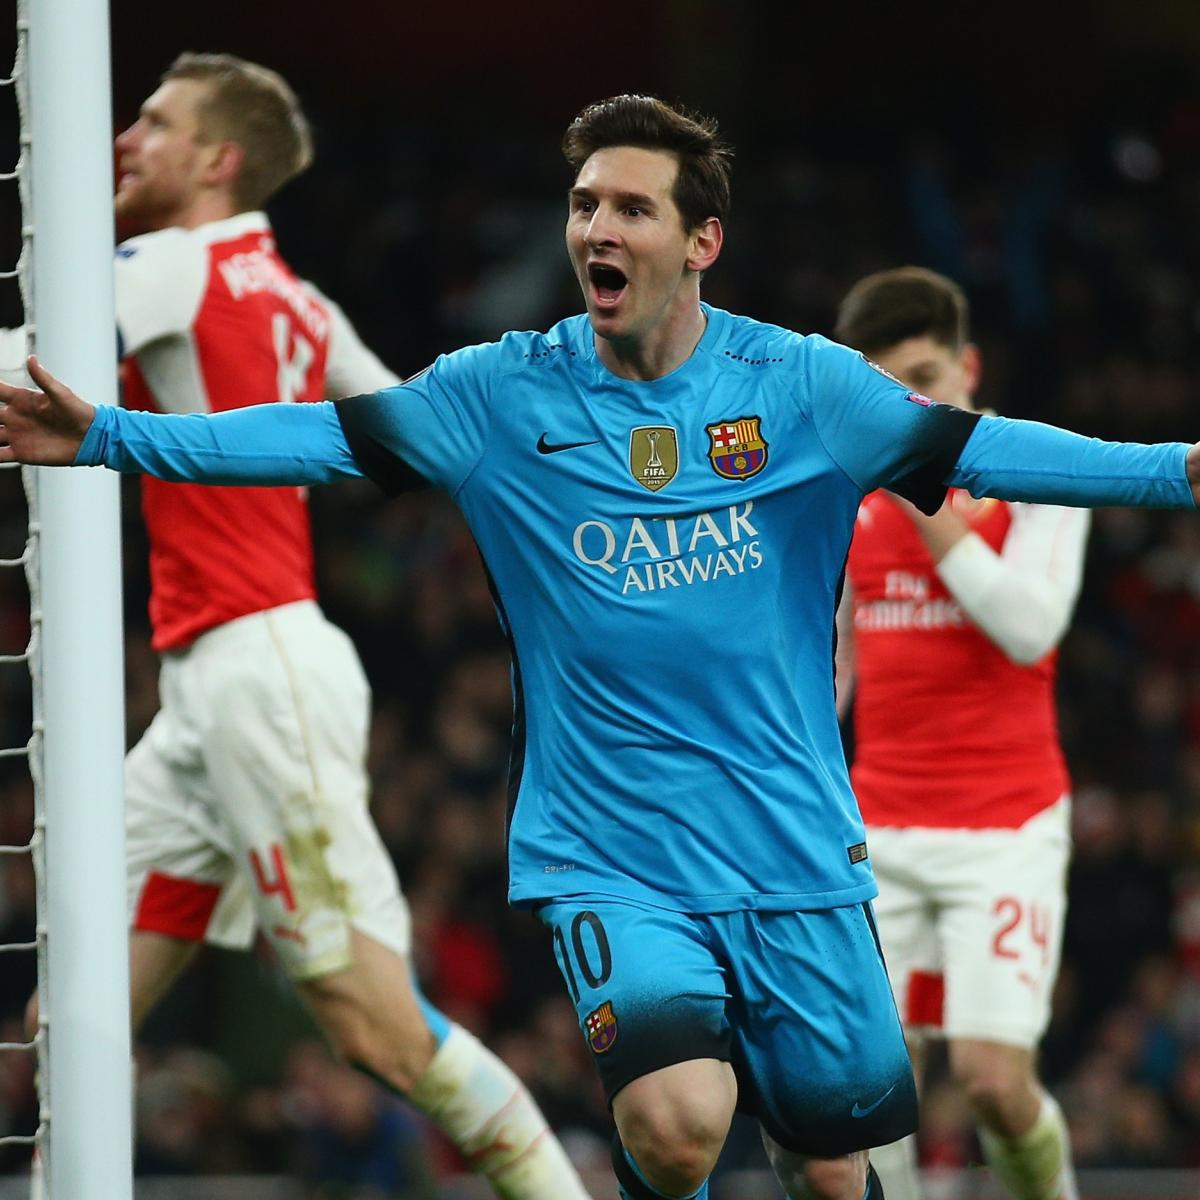 Arsenal Vs Psg Score Reaction From 2016 Champions: Arsenal Vs. Barcelona: Score And Reaction From 2016